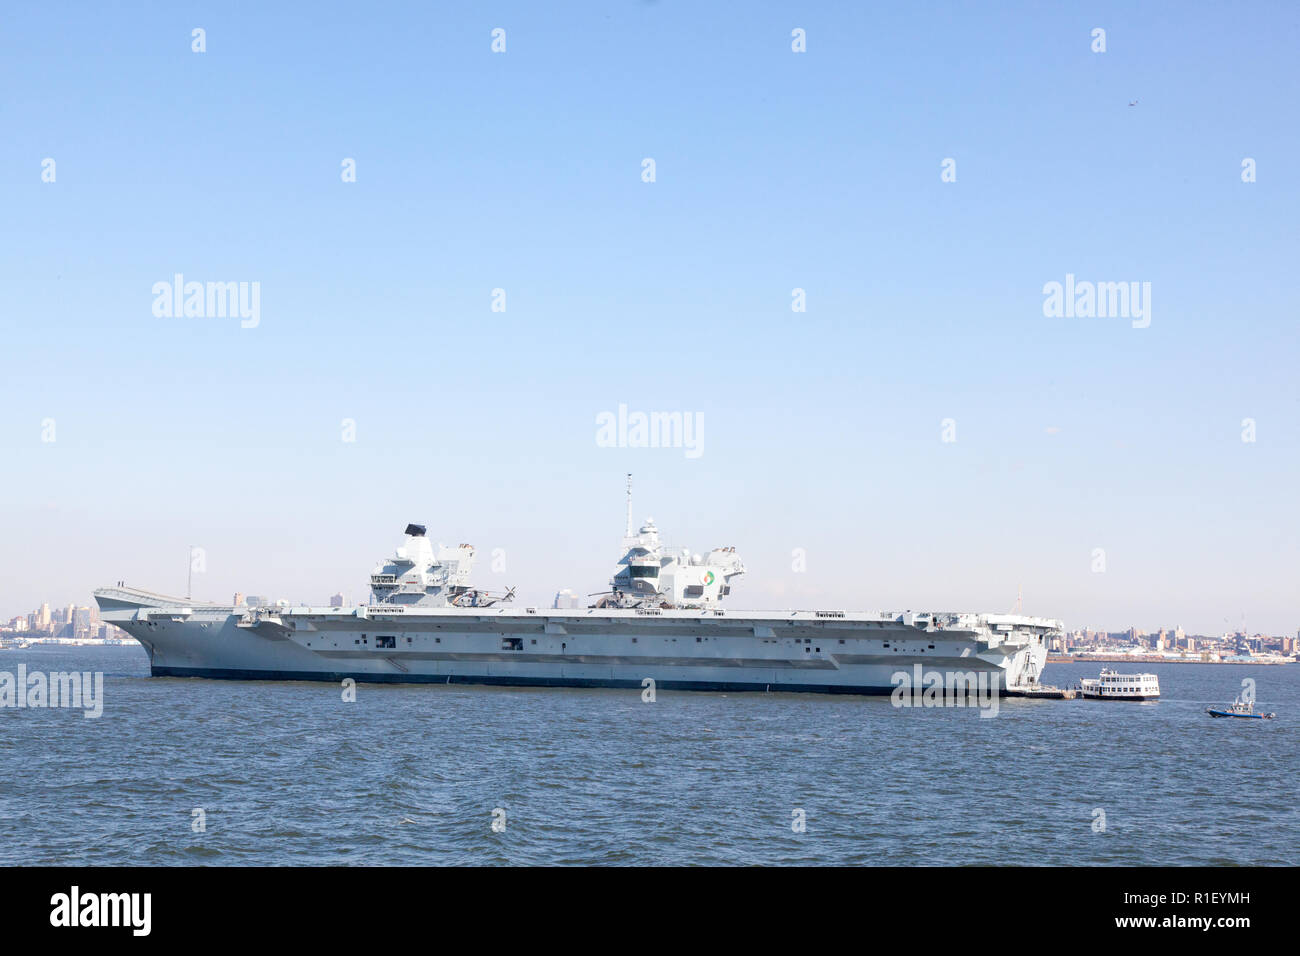 HMS Queen Elizabeth Aircraft Carrier, the Royal Navy's largest and newest warship, moored New York harbor, United States of America. Stock Photo